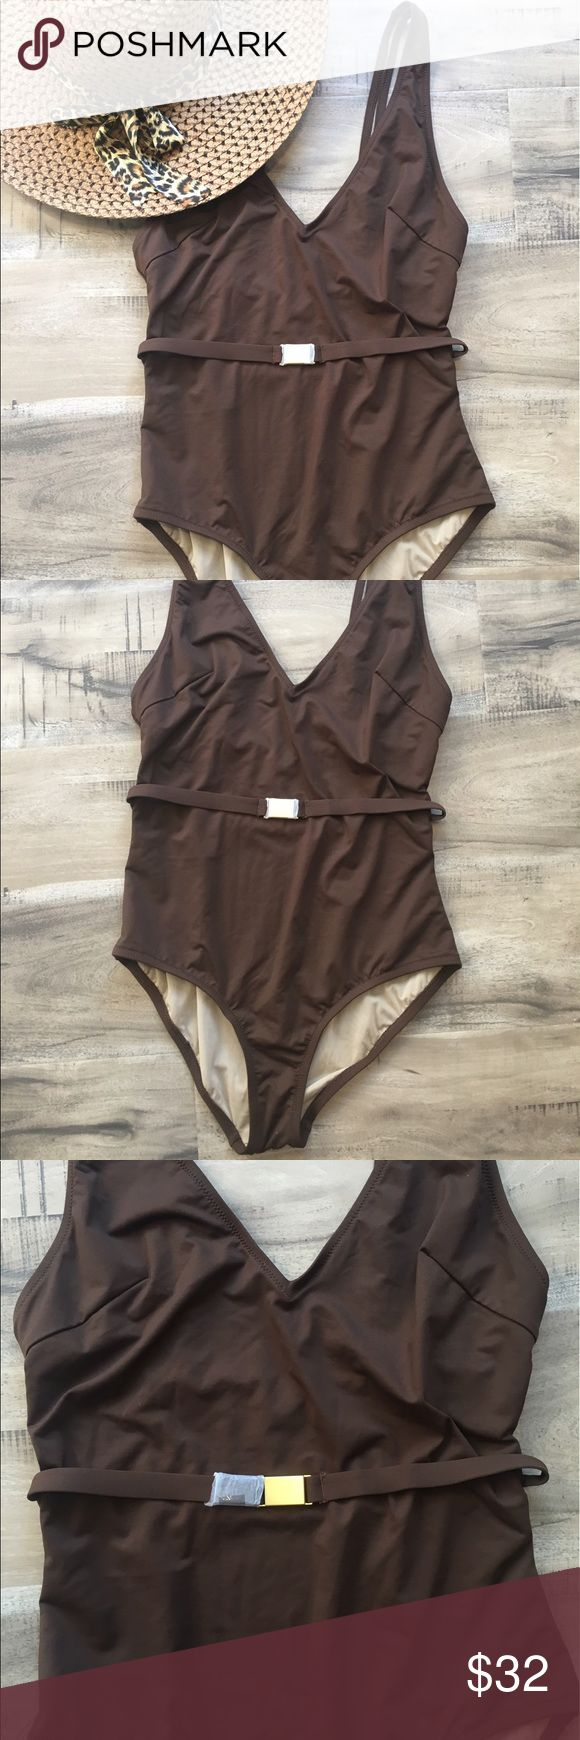 J. Crew Brown One Piece Gold Belt Bikini Swim Suit This is Brand New without Tags! Never worn J. Crew size 6 Brown One Piece Modest! J. Crew Swim One Pieces